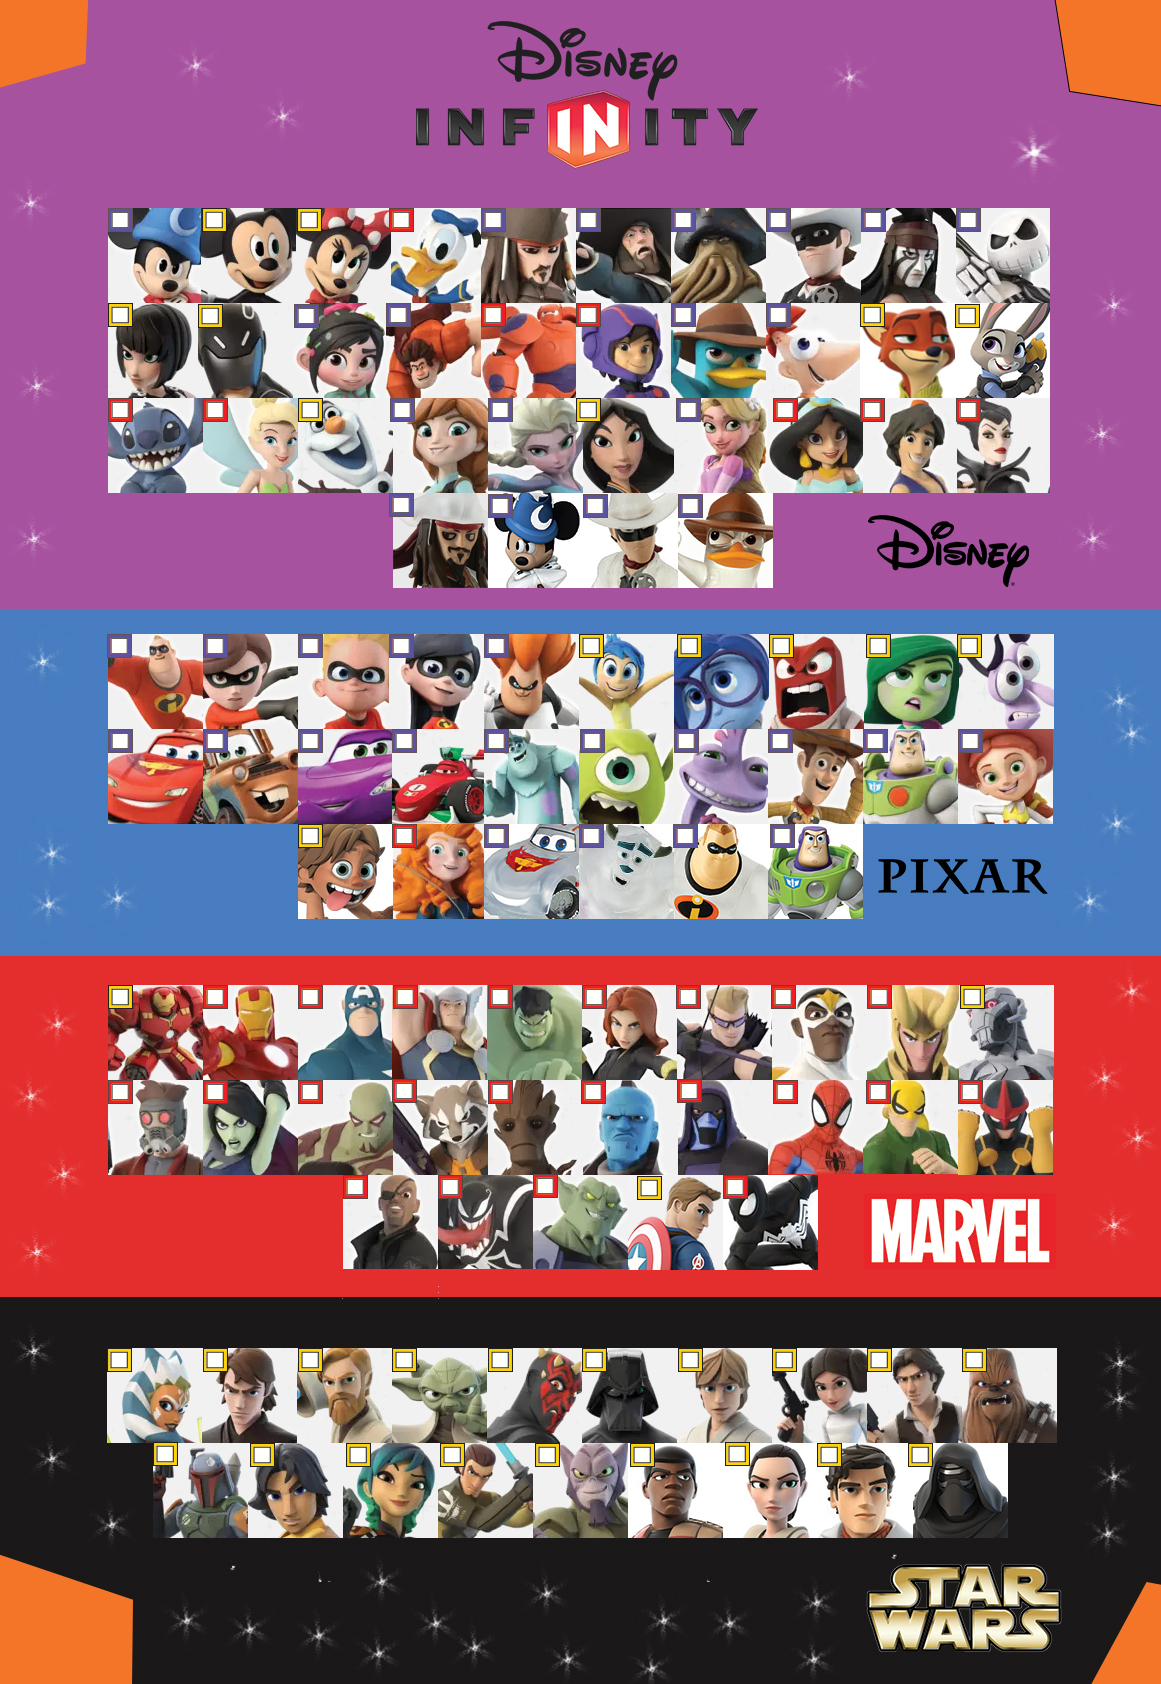 infinity 3 0 characters. disney infinity 3.0 character checklist version 2 by darkmudkip6 3 0 characters